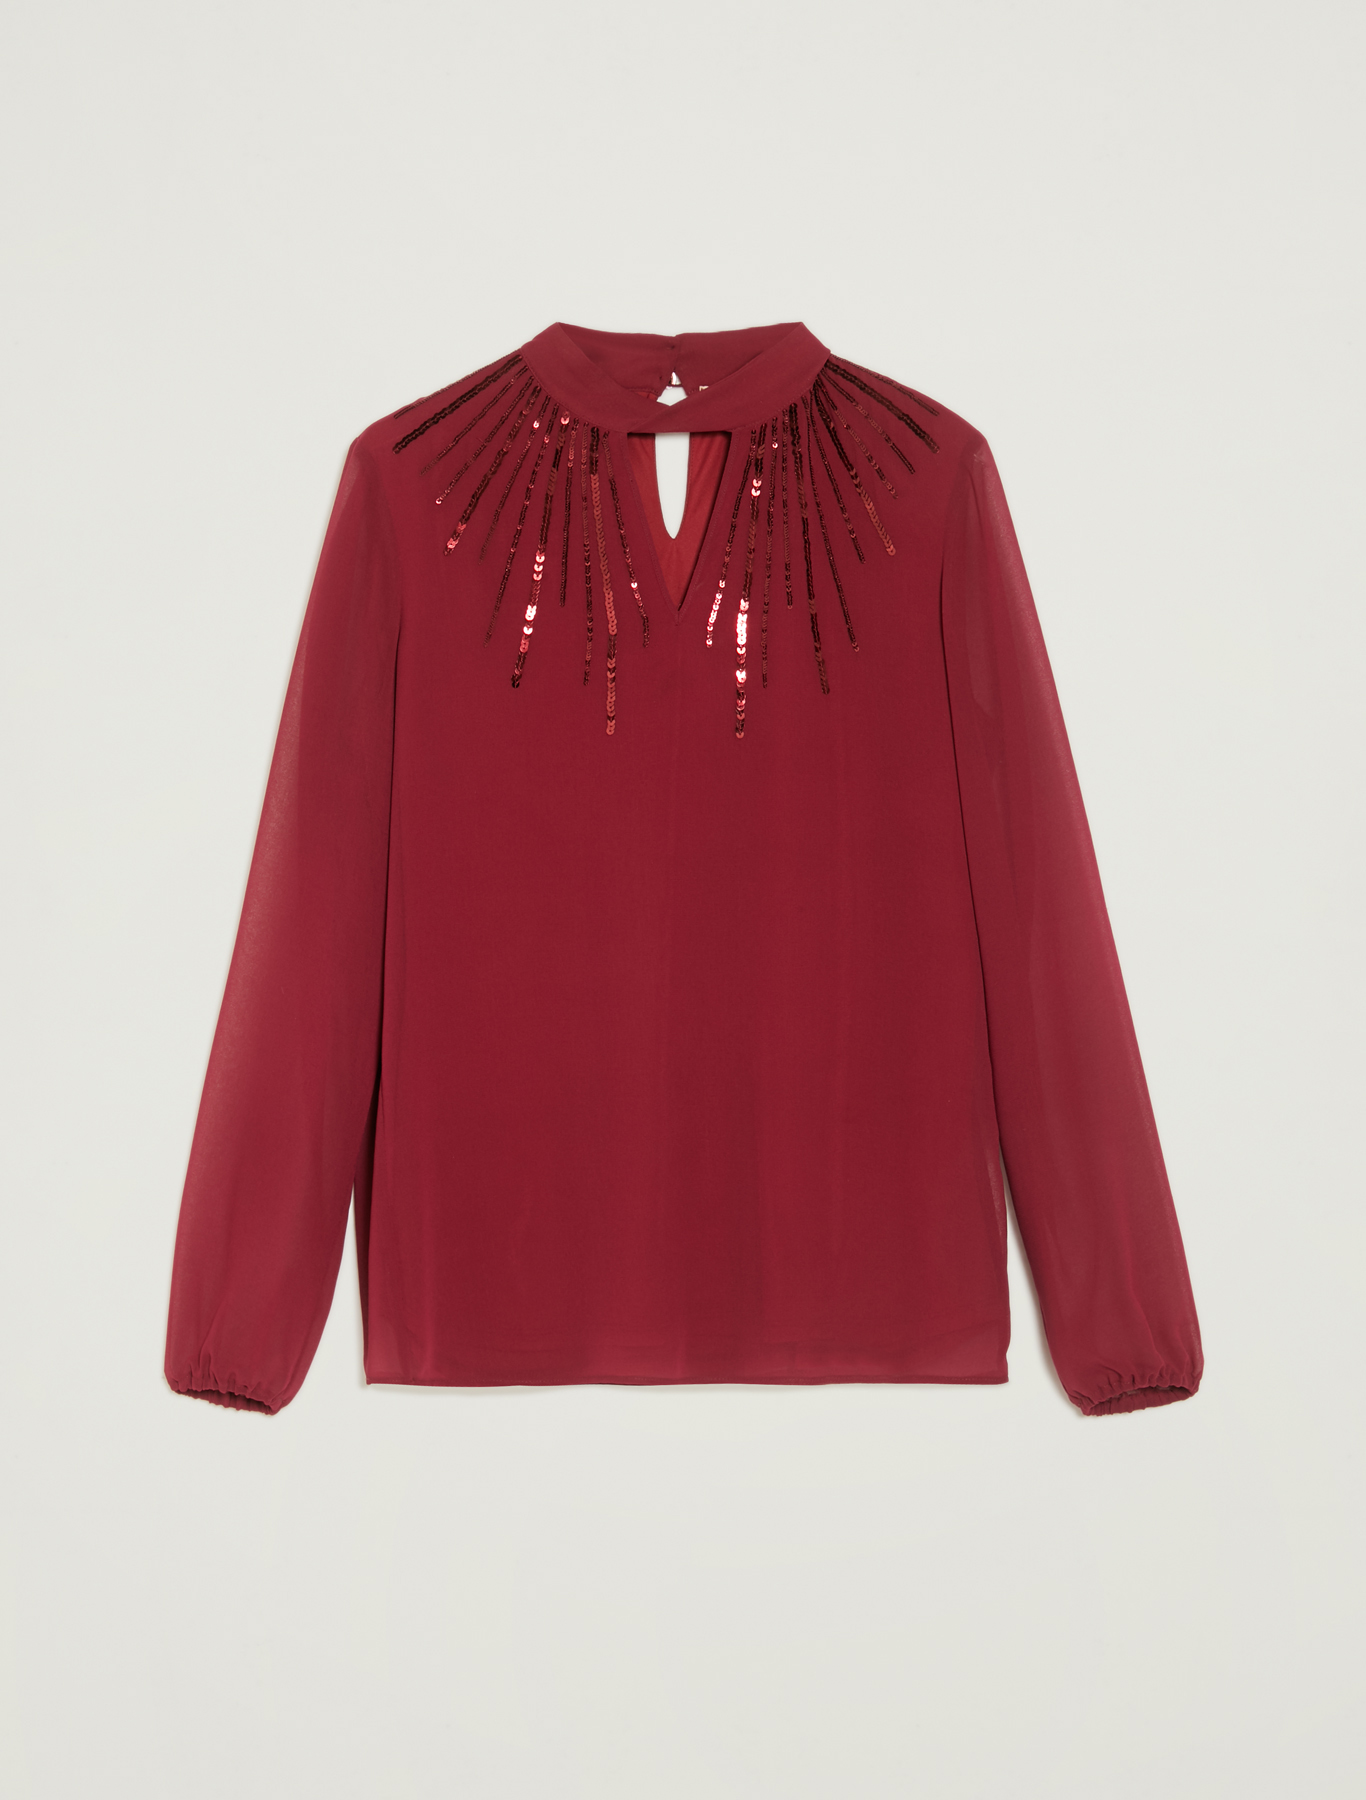 Sequinned georgette blouse - burgundy - pennyblack